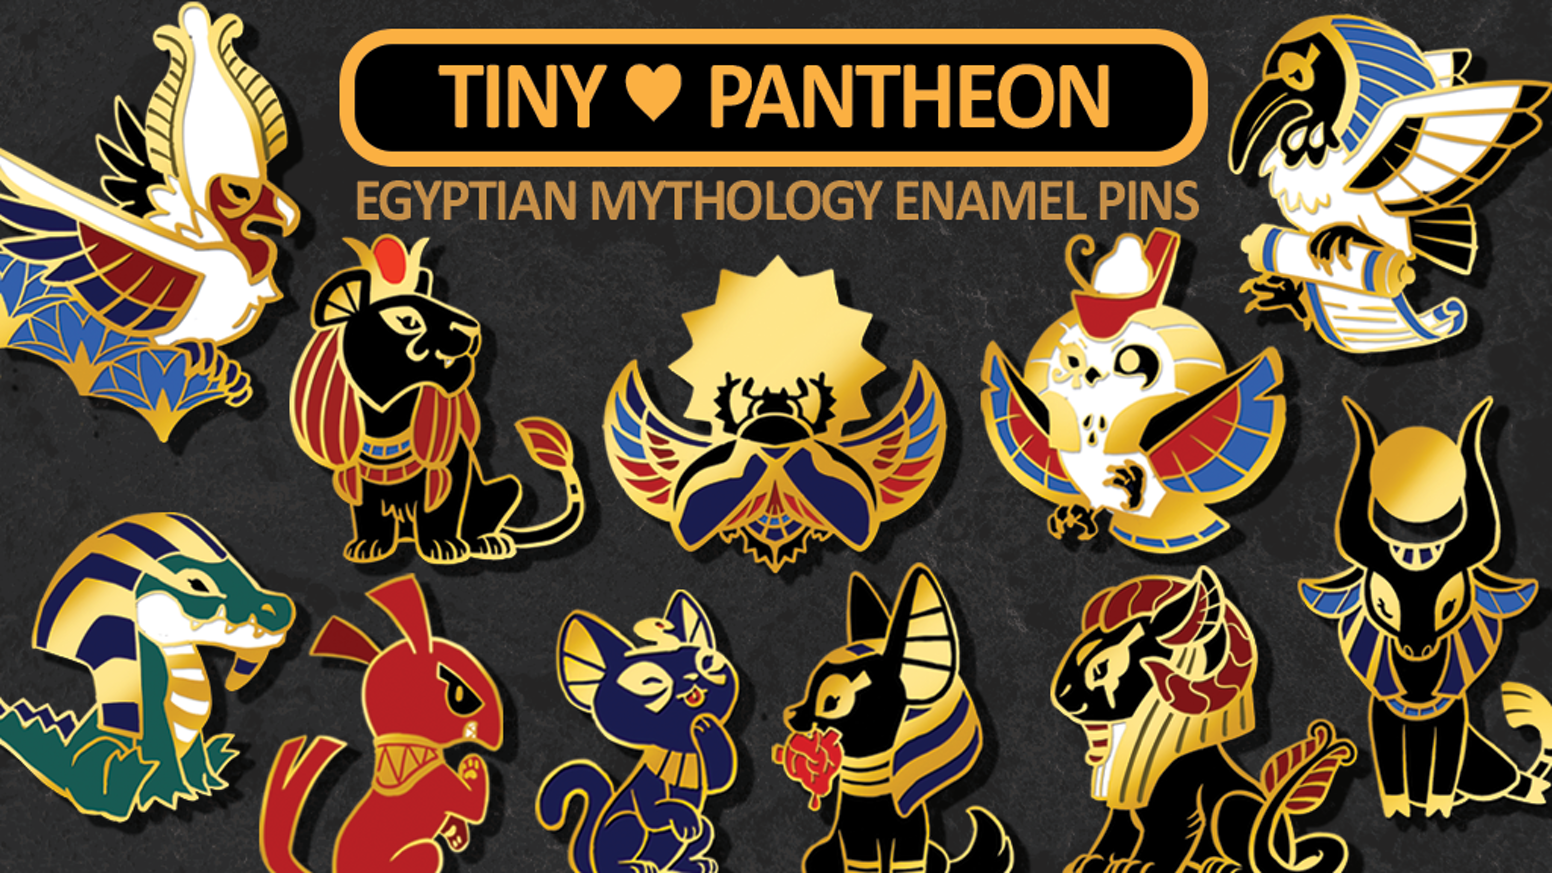 Egyptian deities and mythological creatures as adorable enamel pins.